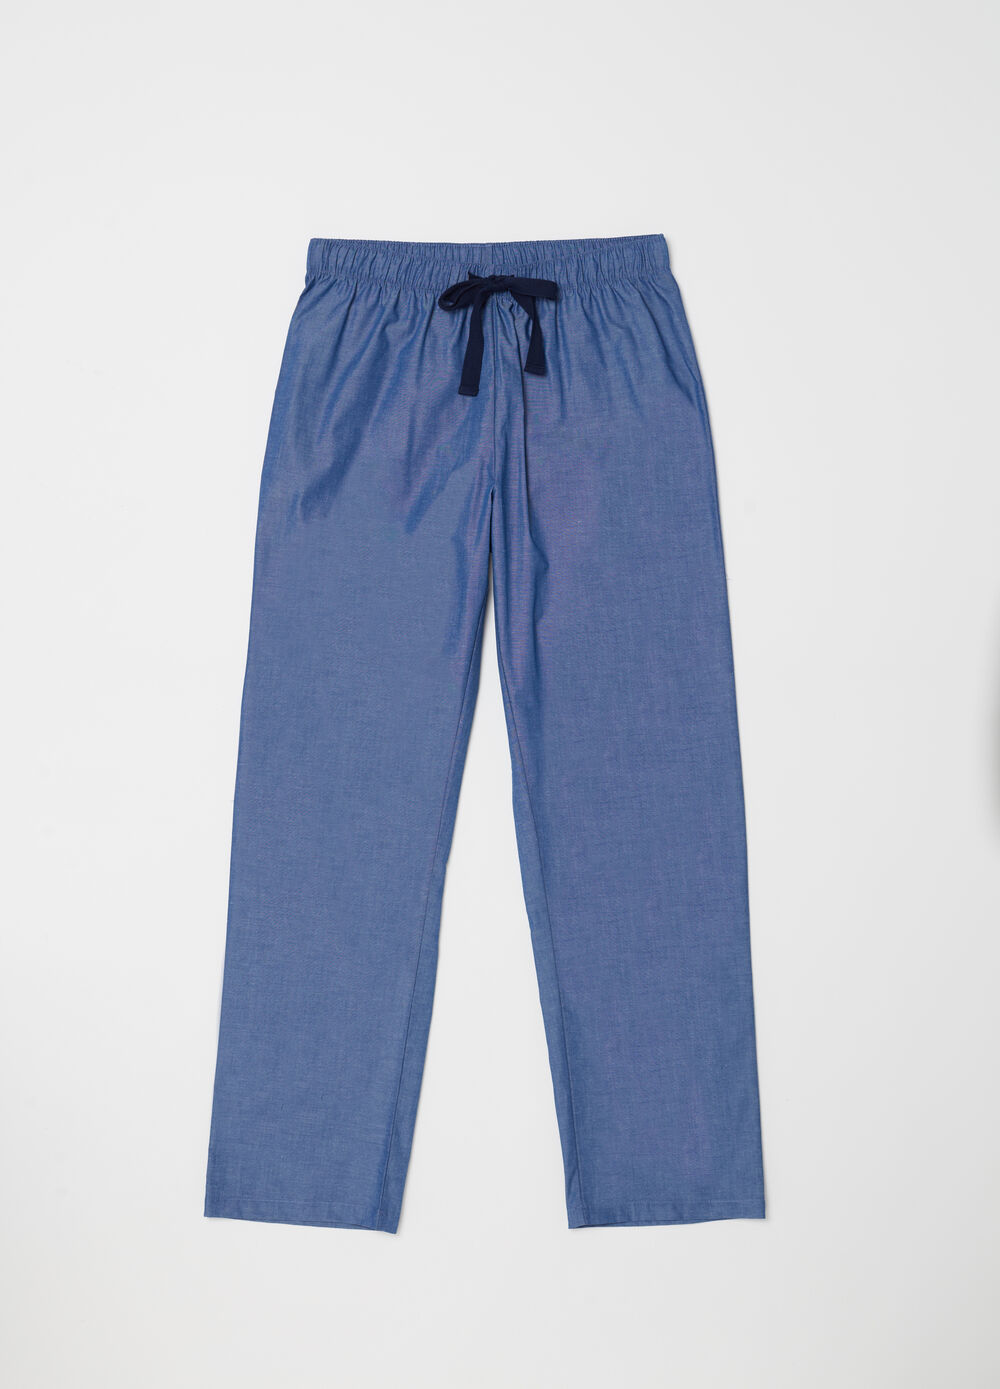 Yarn-dyed canvas trousers with pocket